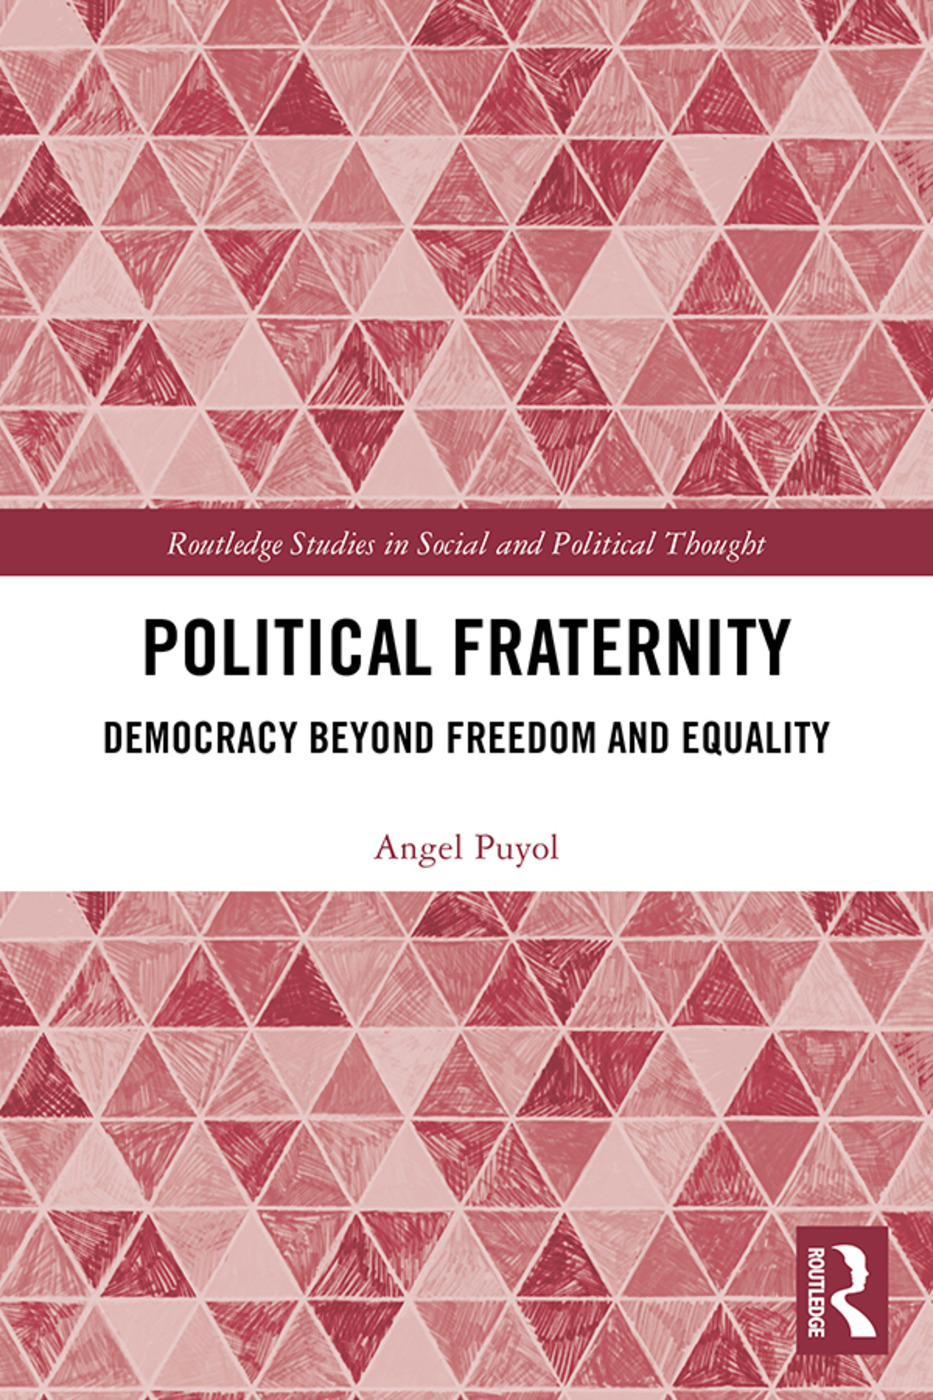 Political Fraternity: Democracy beyond Freedom and Equality book cover